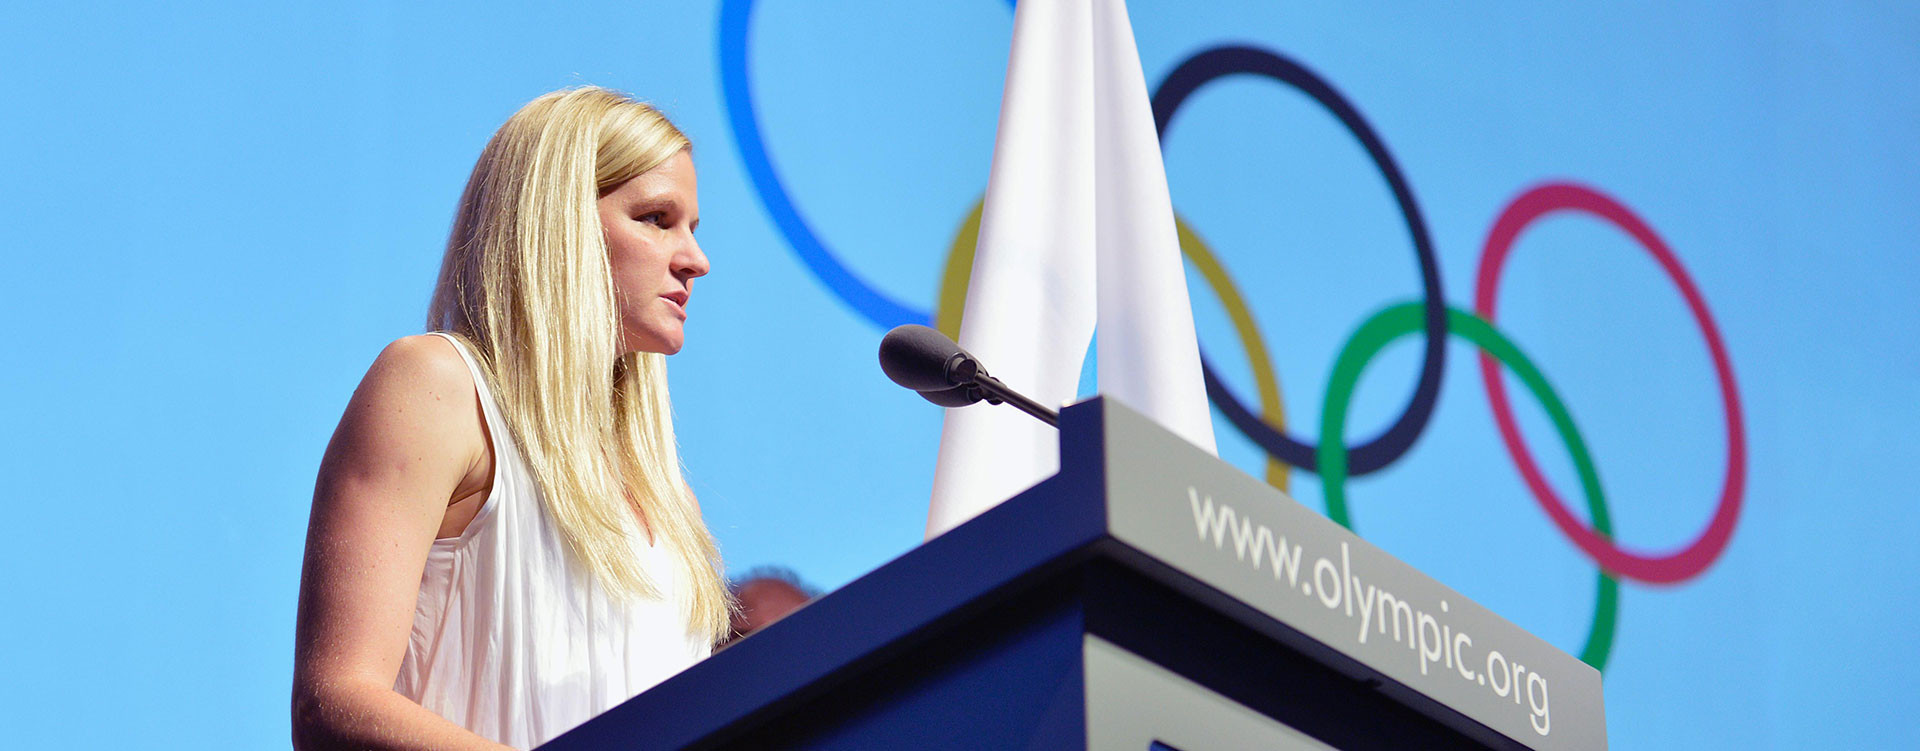 Doubts over how independent the Independent Testing Authority will be have been raised, especially after the appointment of two IOC members, including Kirsty Coventry, the Board ©IOC